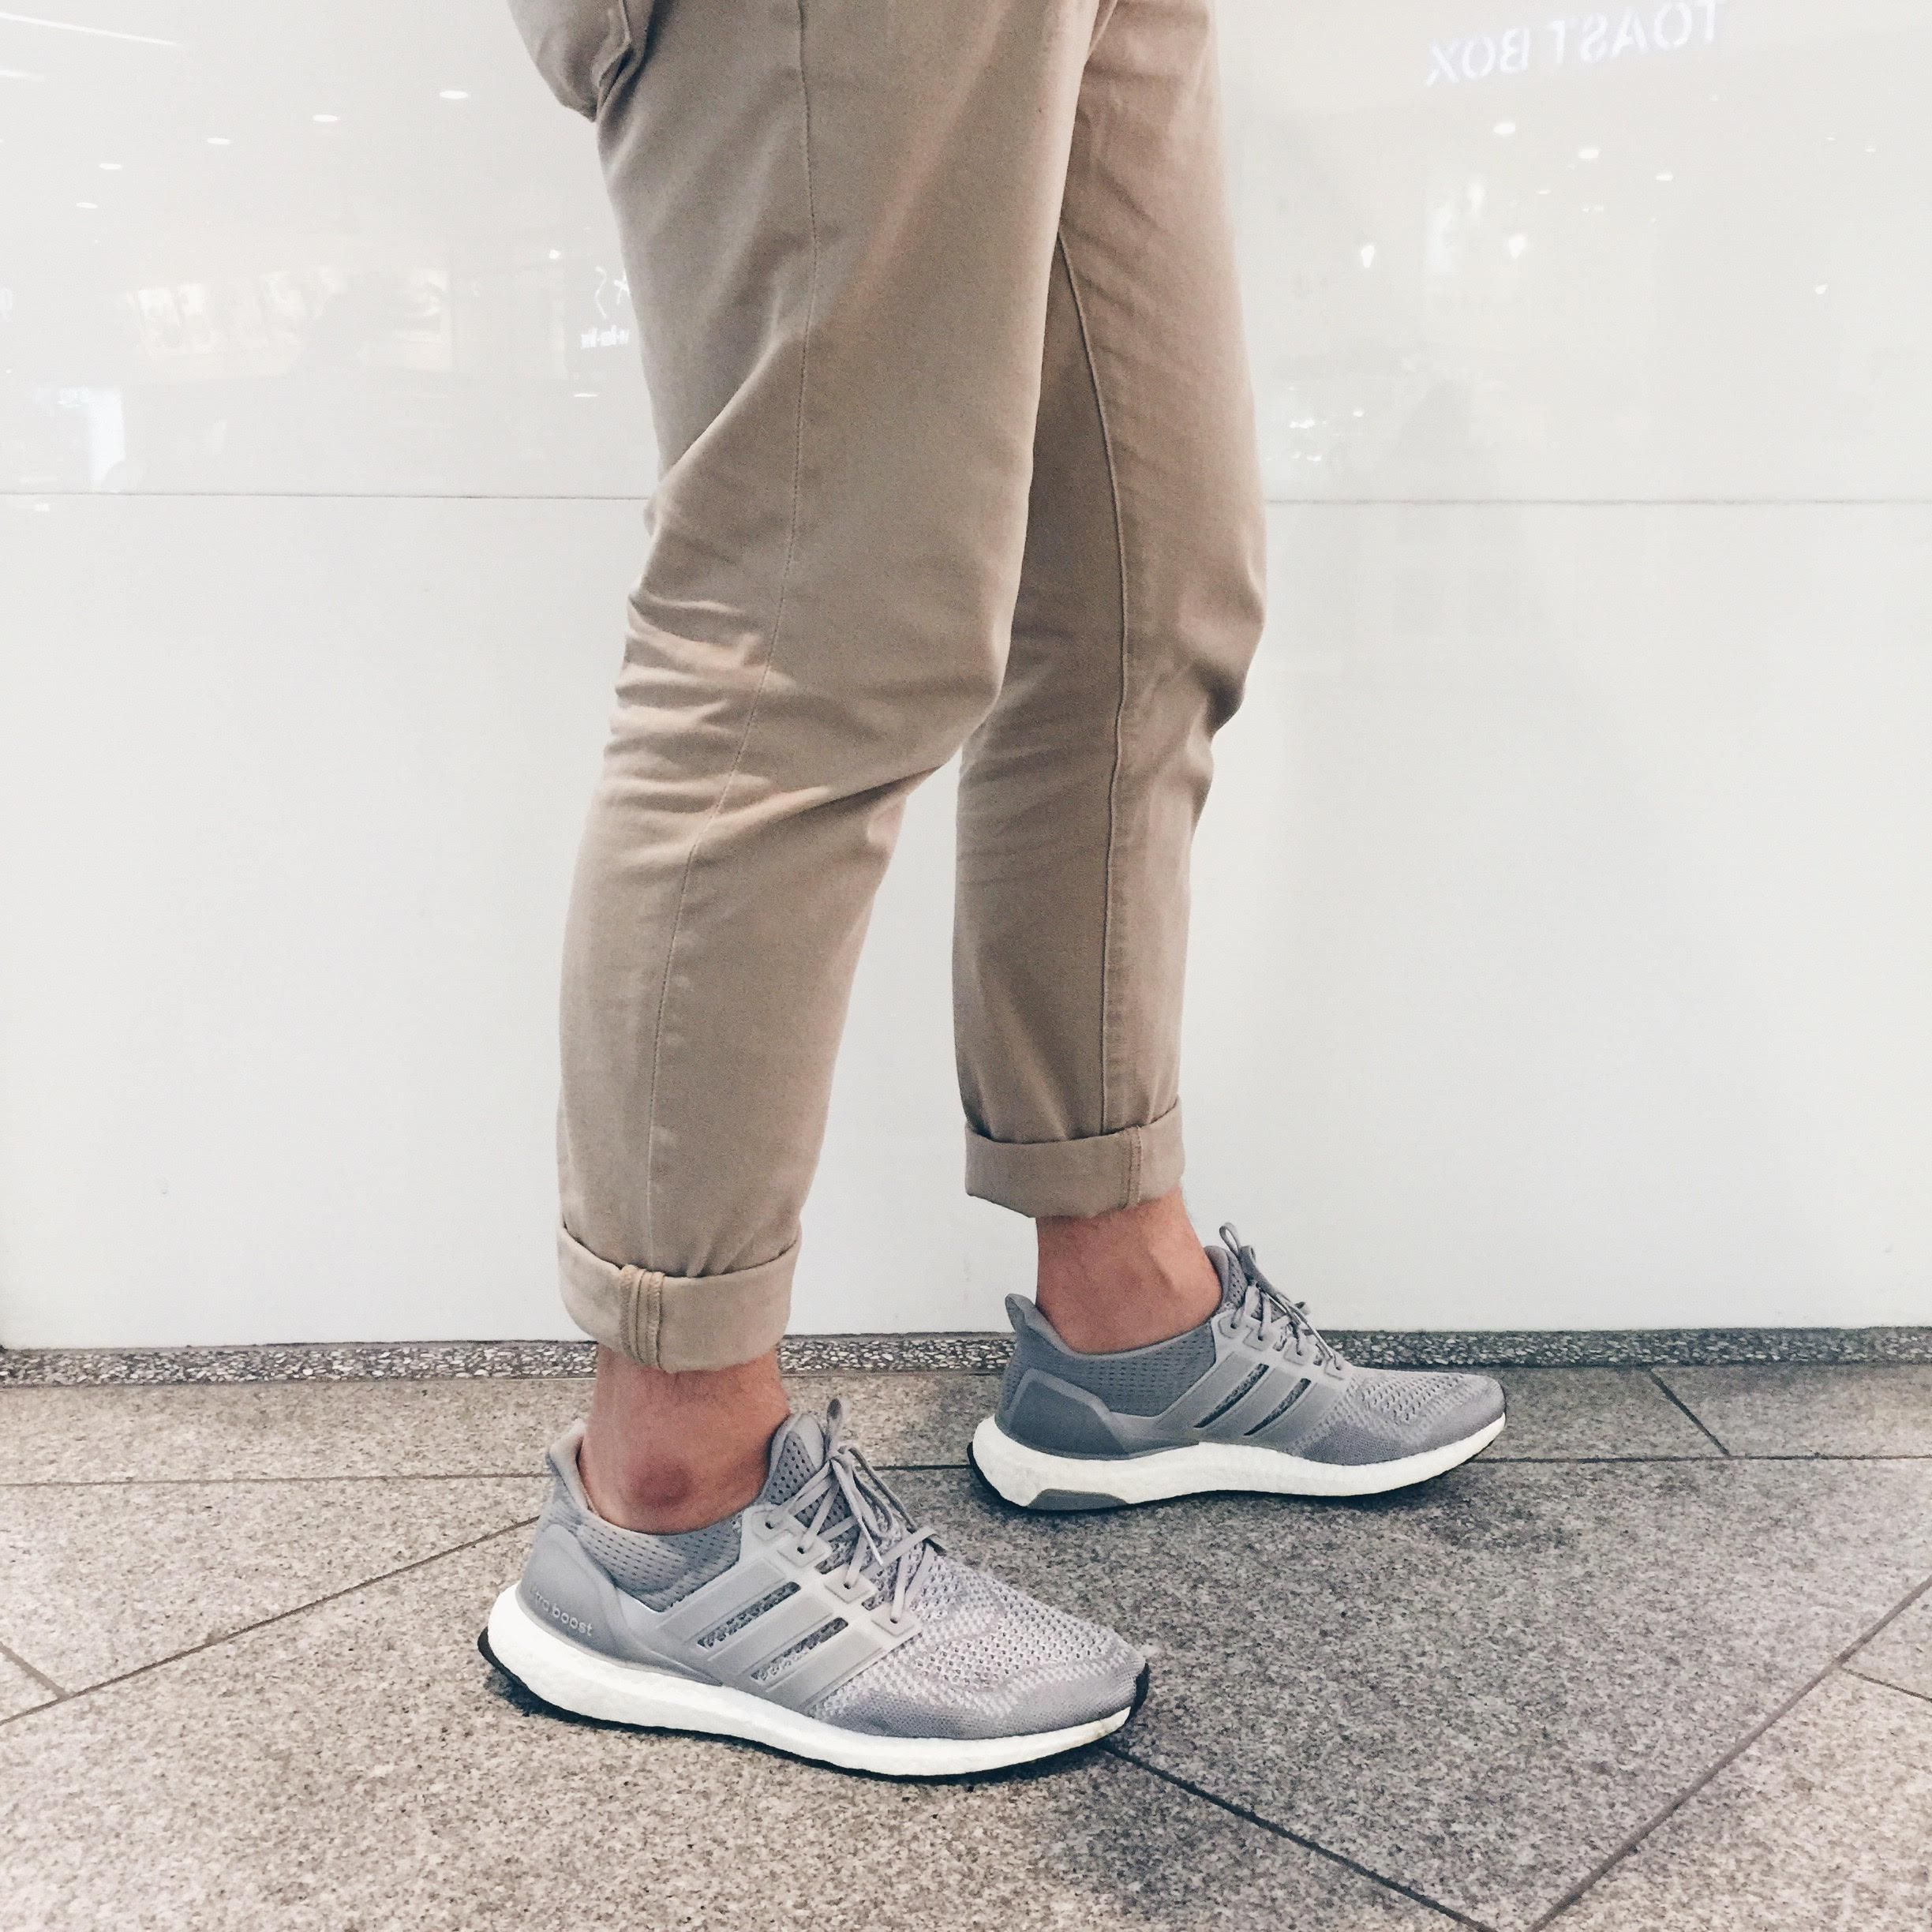 4799e202d2b WDYWT Ultra Boost Silver. Still one of my favorite colorways ever. Clean  and easy to match with any outfit. Pardon the messy pinstripe  P